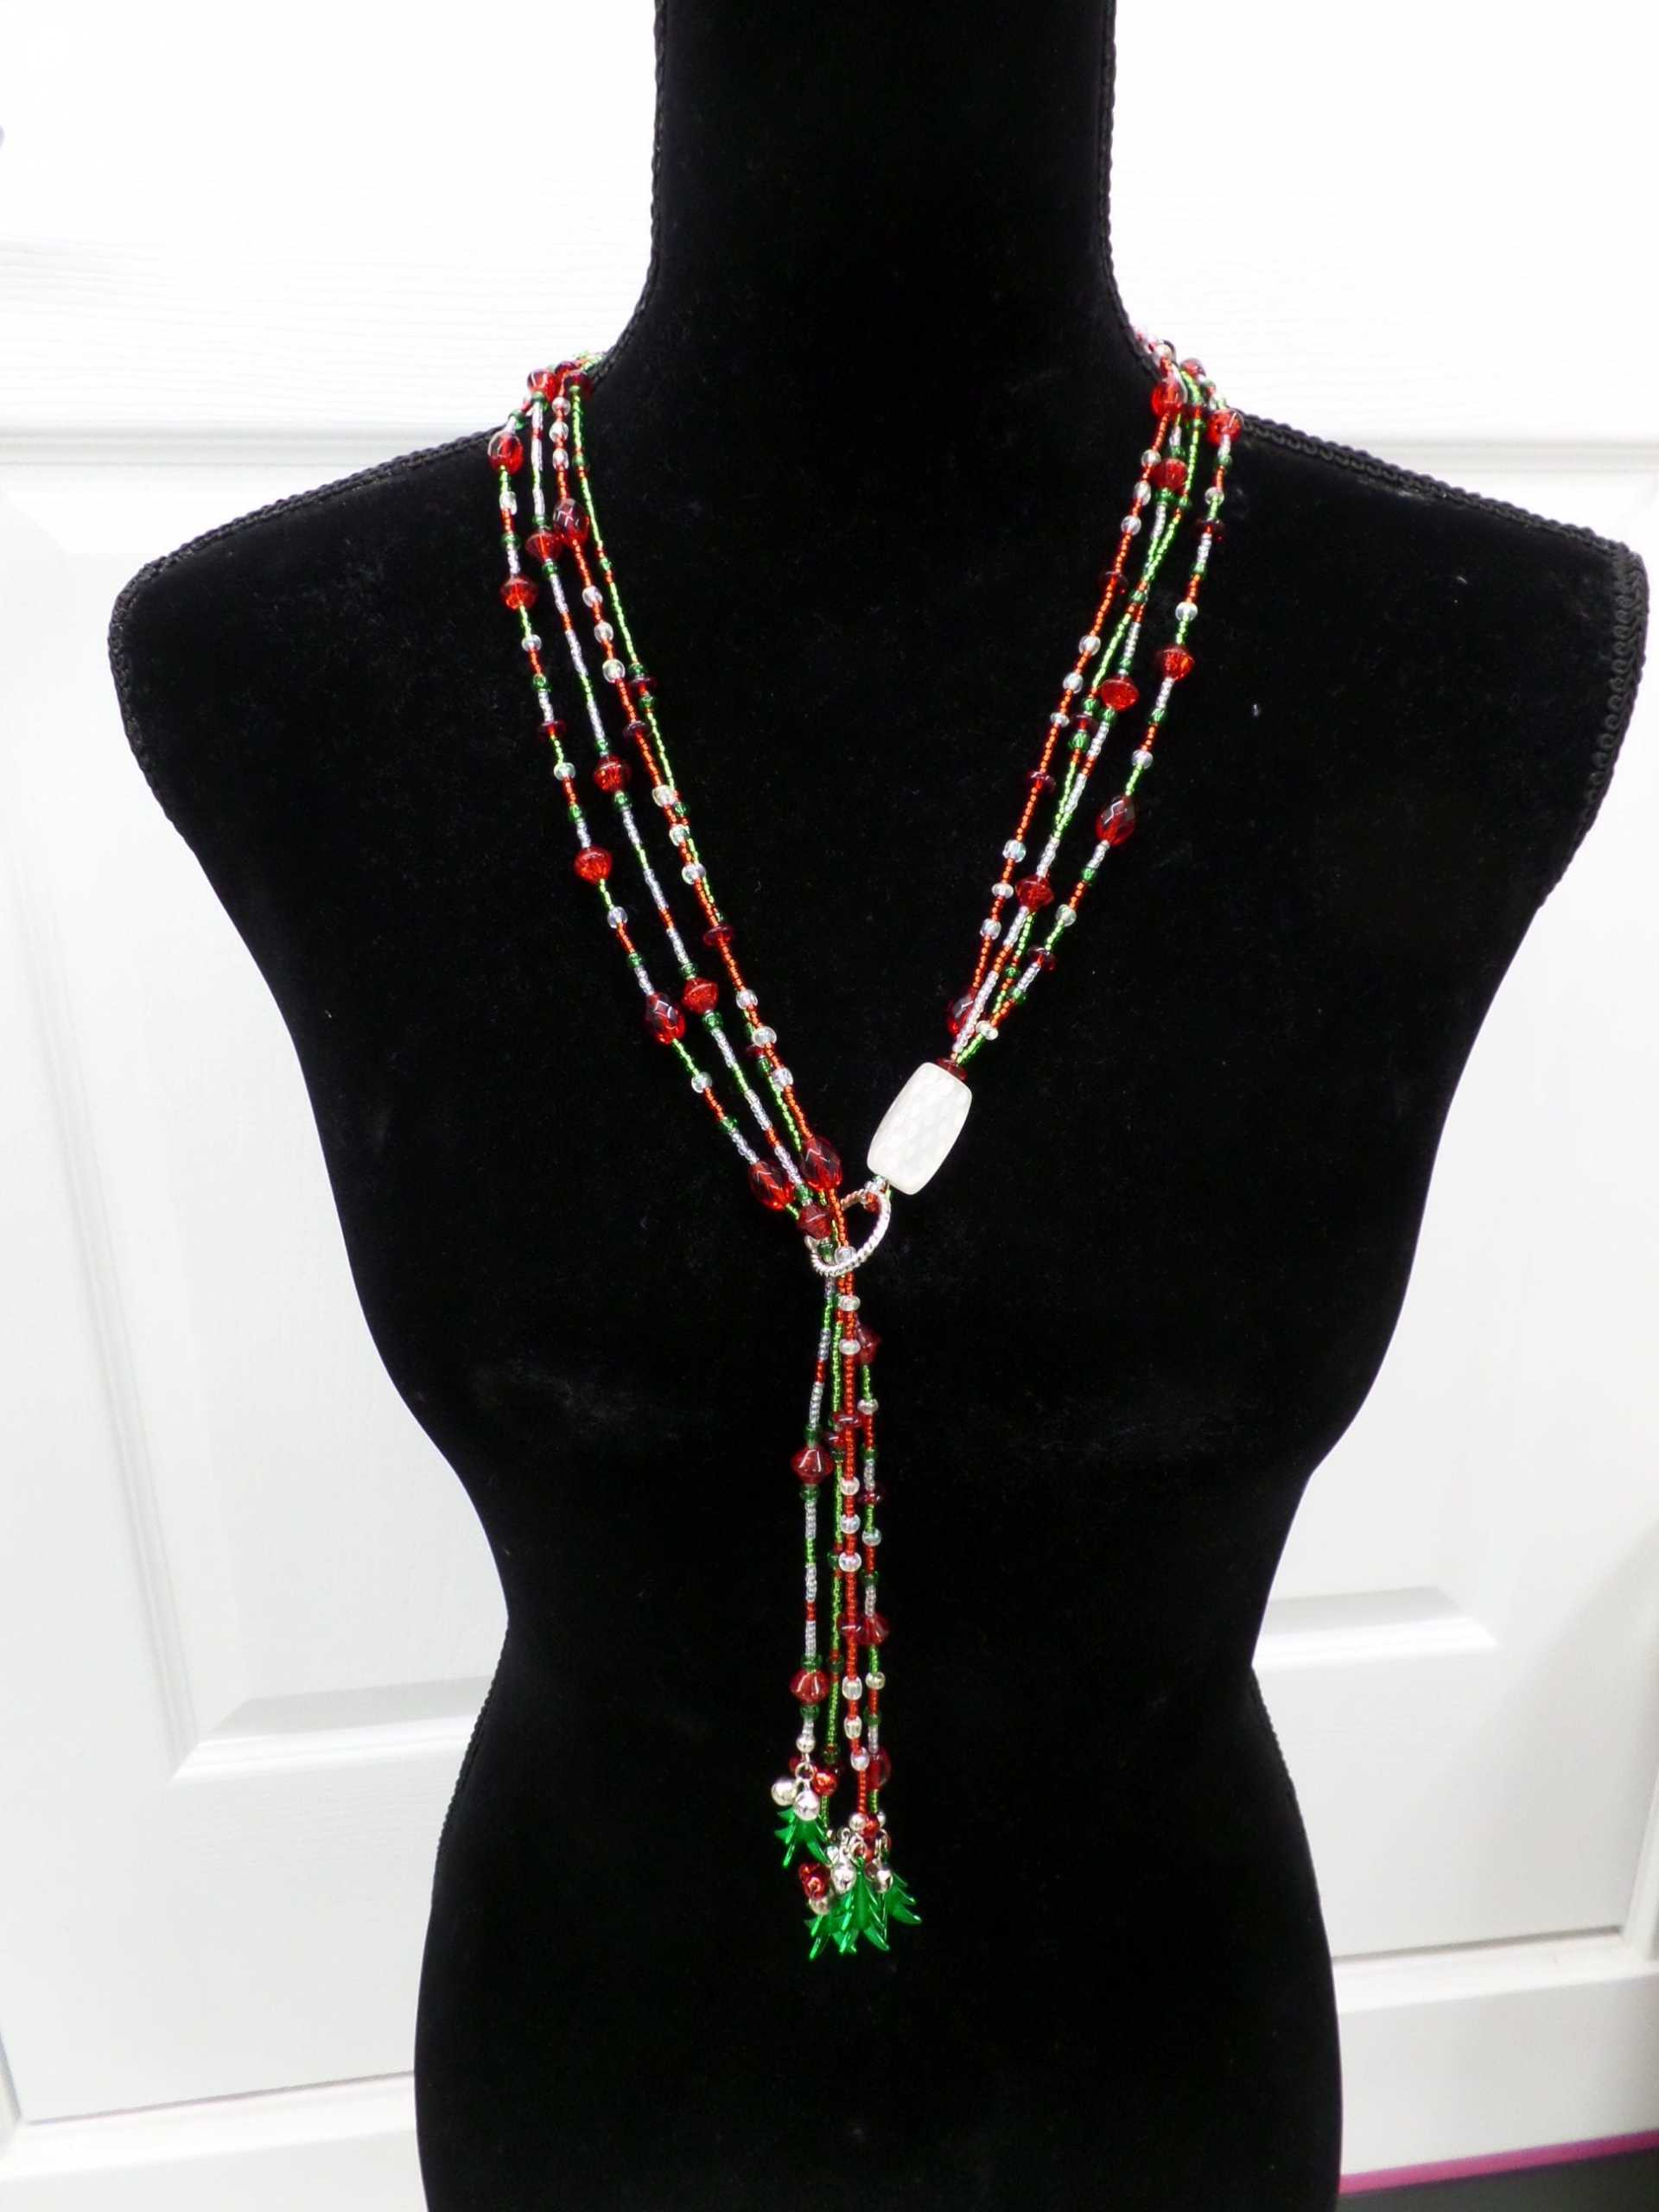 HOLIDAY JEWELRY SET  Donated by: TWO SOULS JEWELRY  Valued at: $50